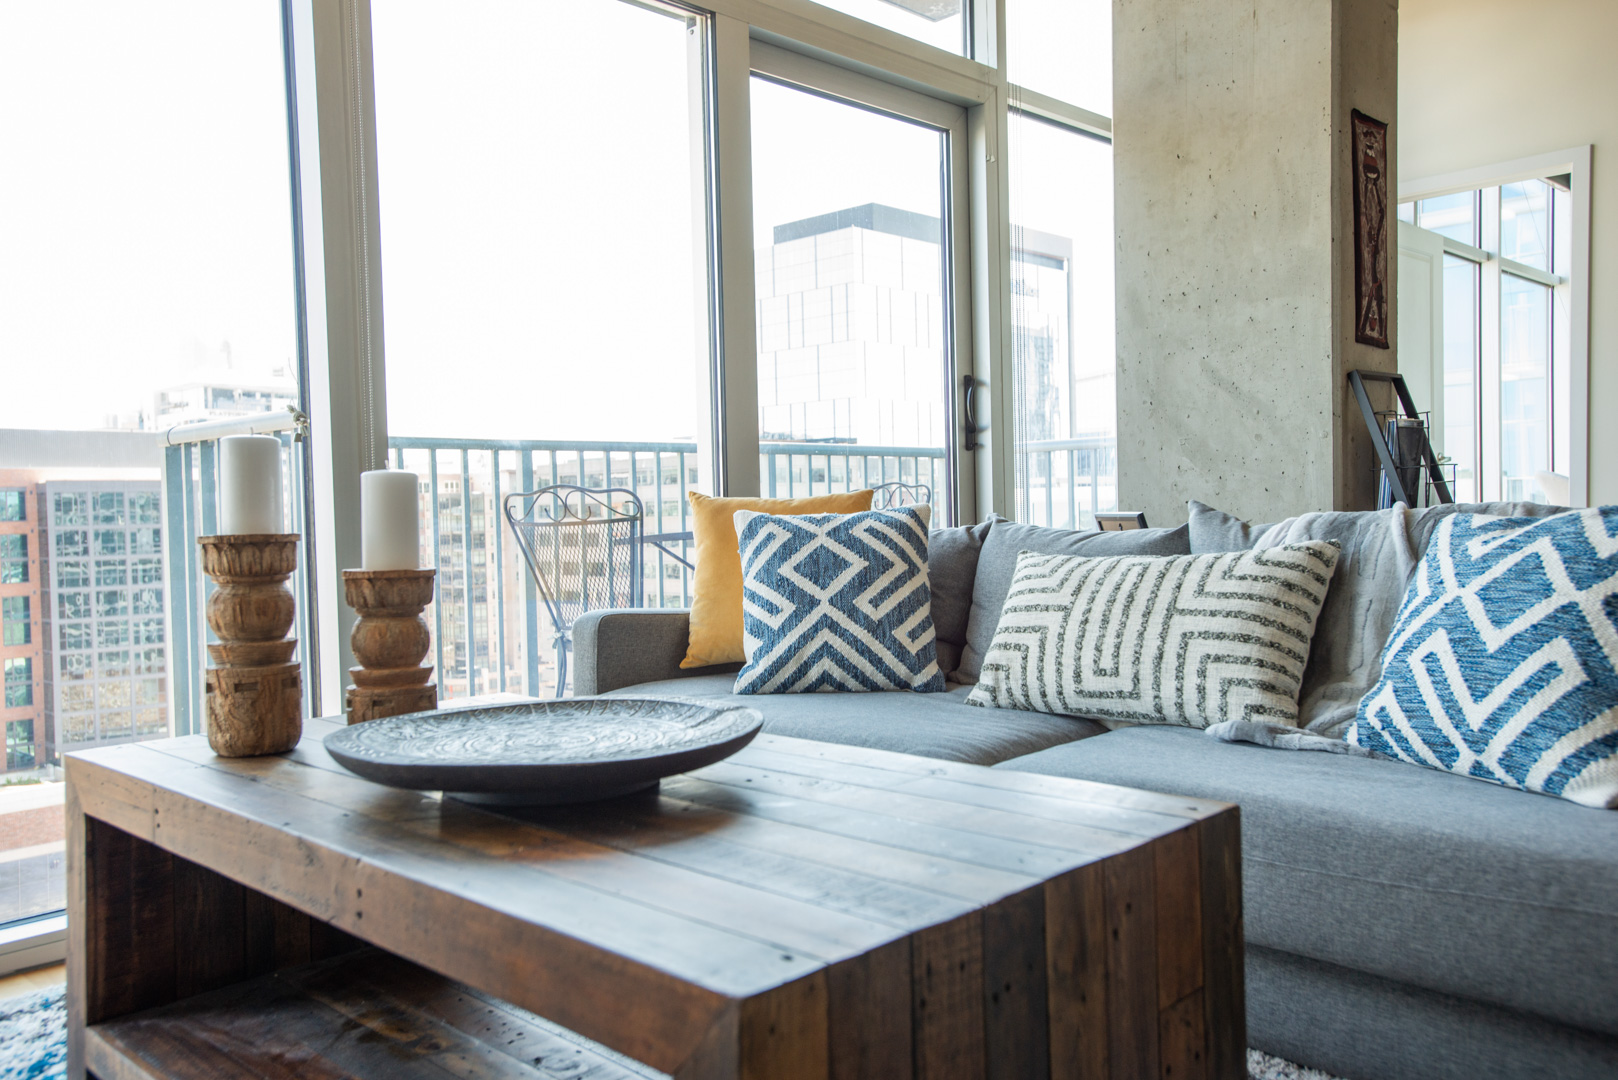 Glass House Condo coffee table and sofa with pillows